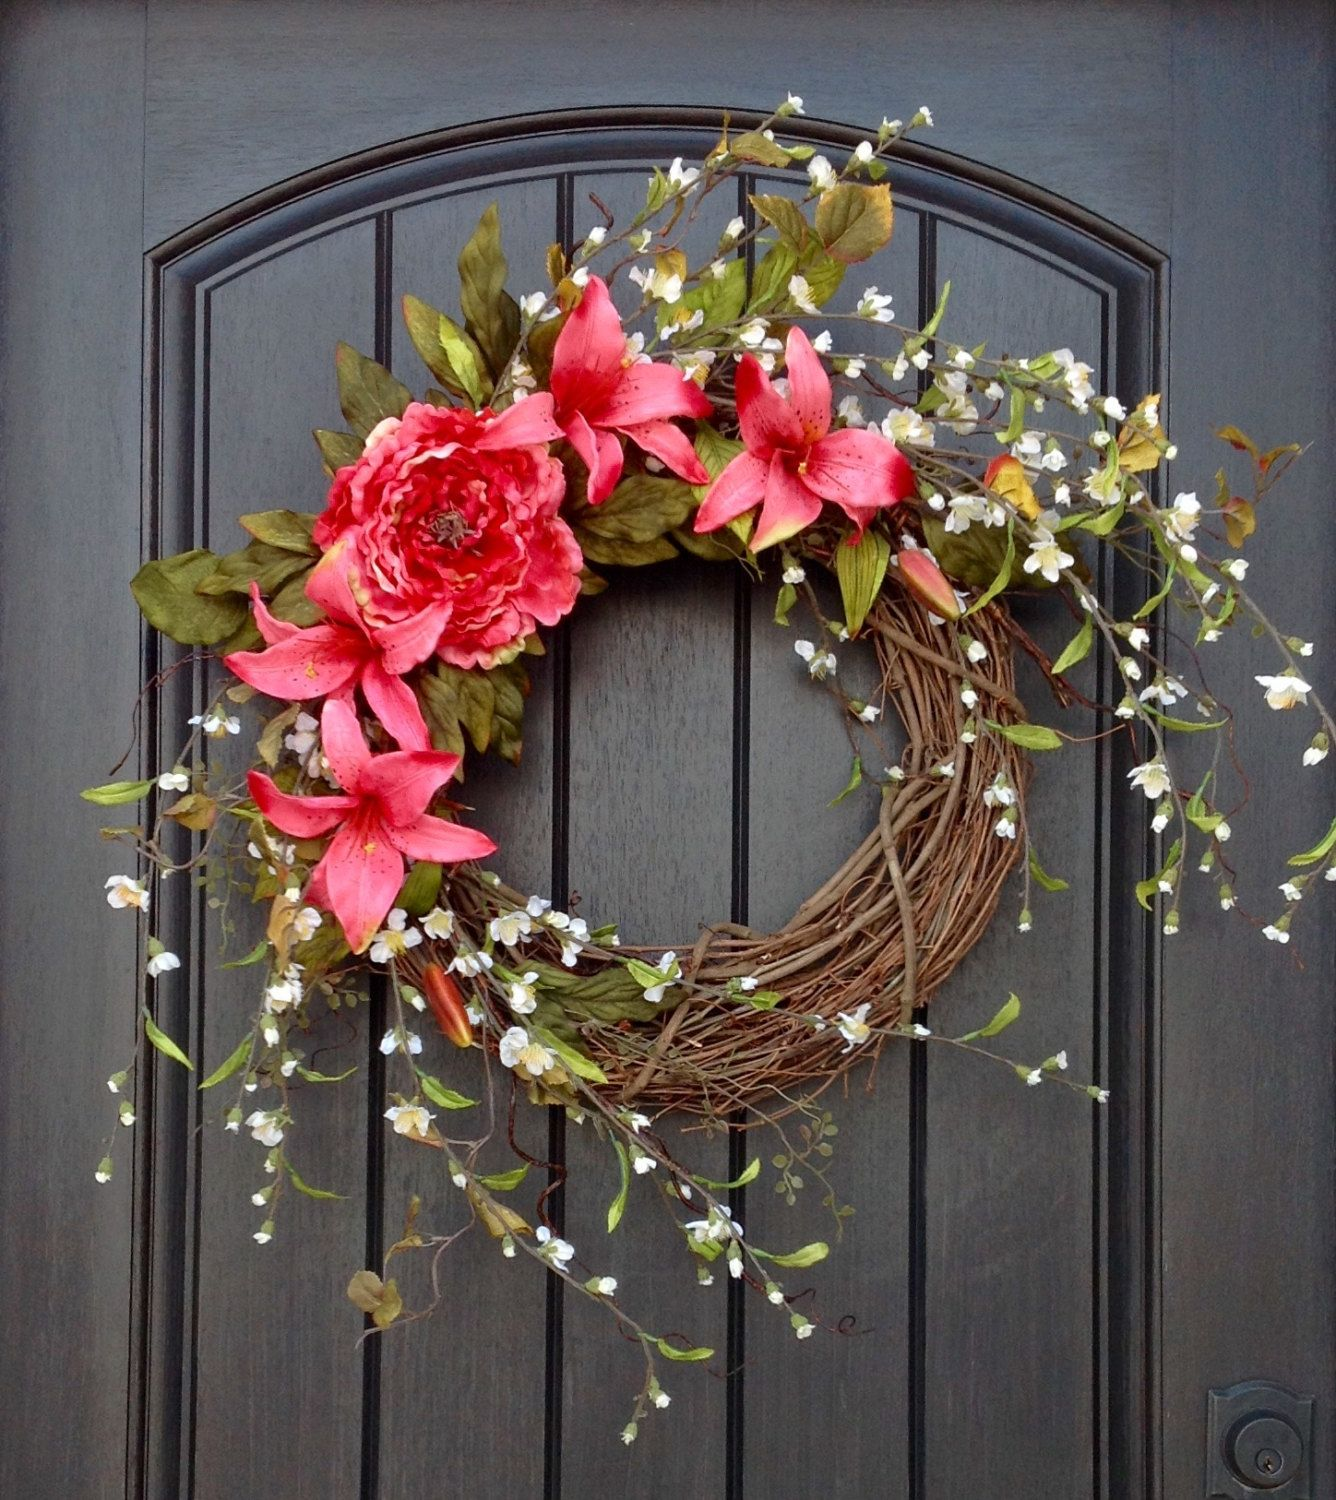 Spring Wreath Summer Wreath Floral White Branches Door Wreath Grapevine  Wreath Decor Pink Lilies Pink Peony Wispy Easter Mothers Day By  AnExtraordinaryGift ...